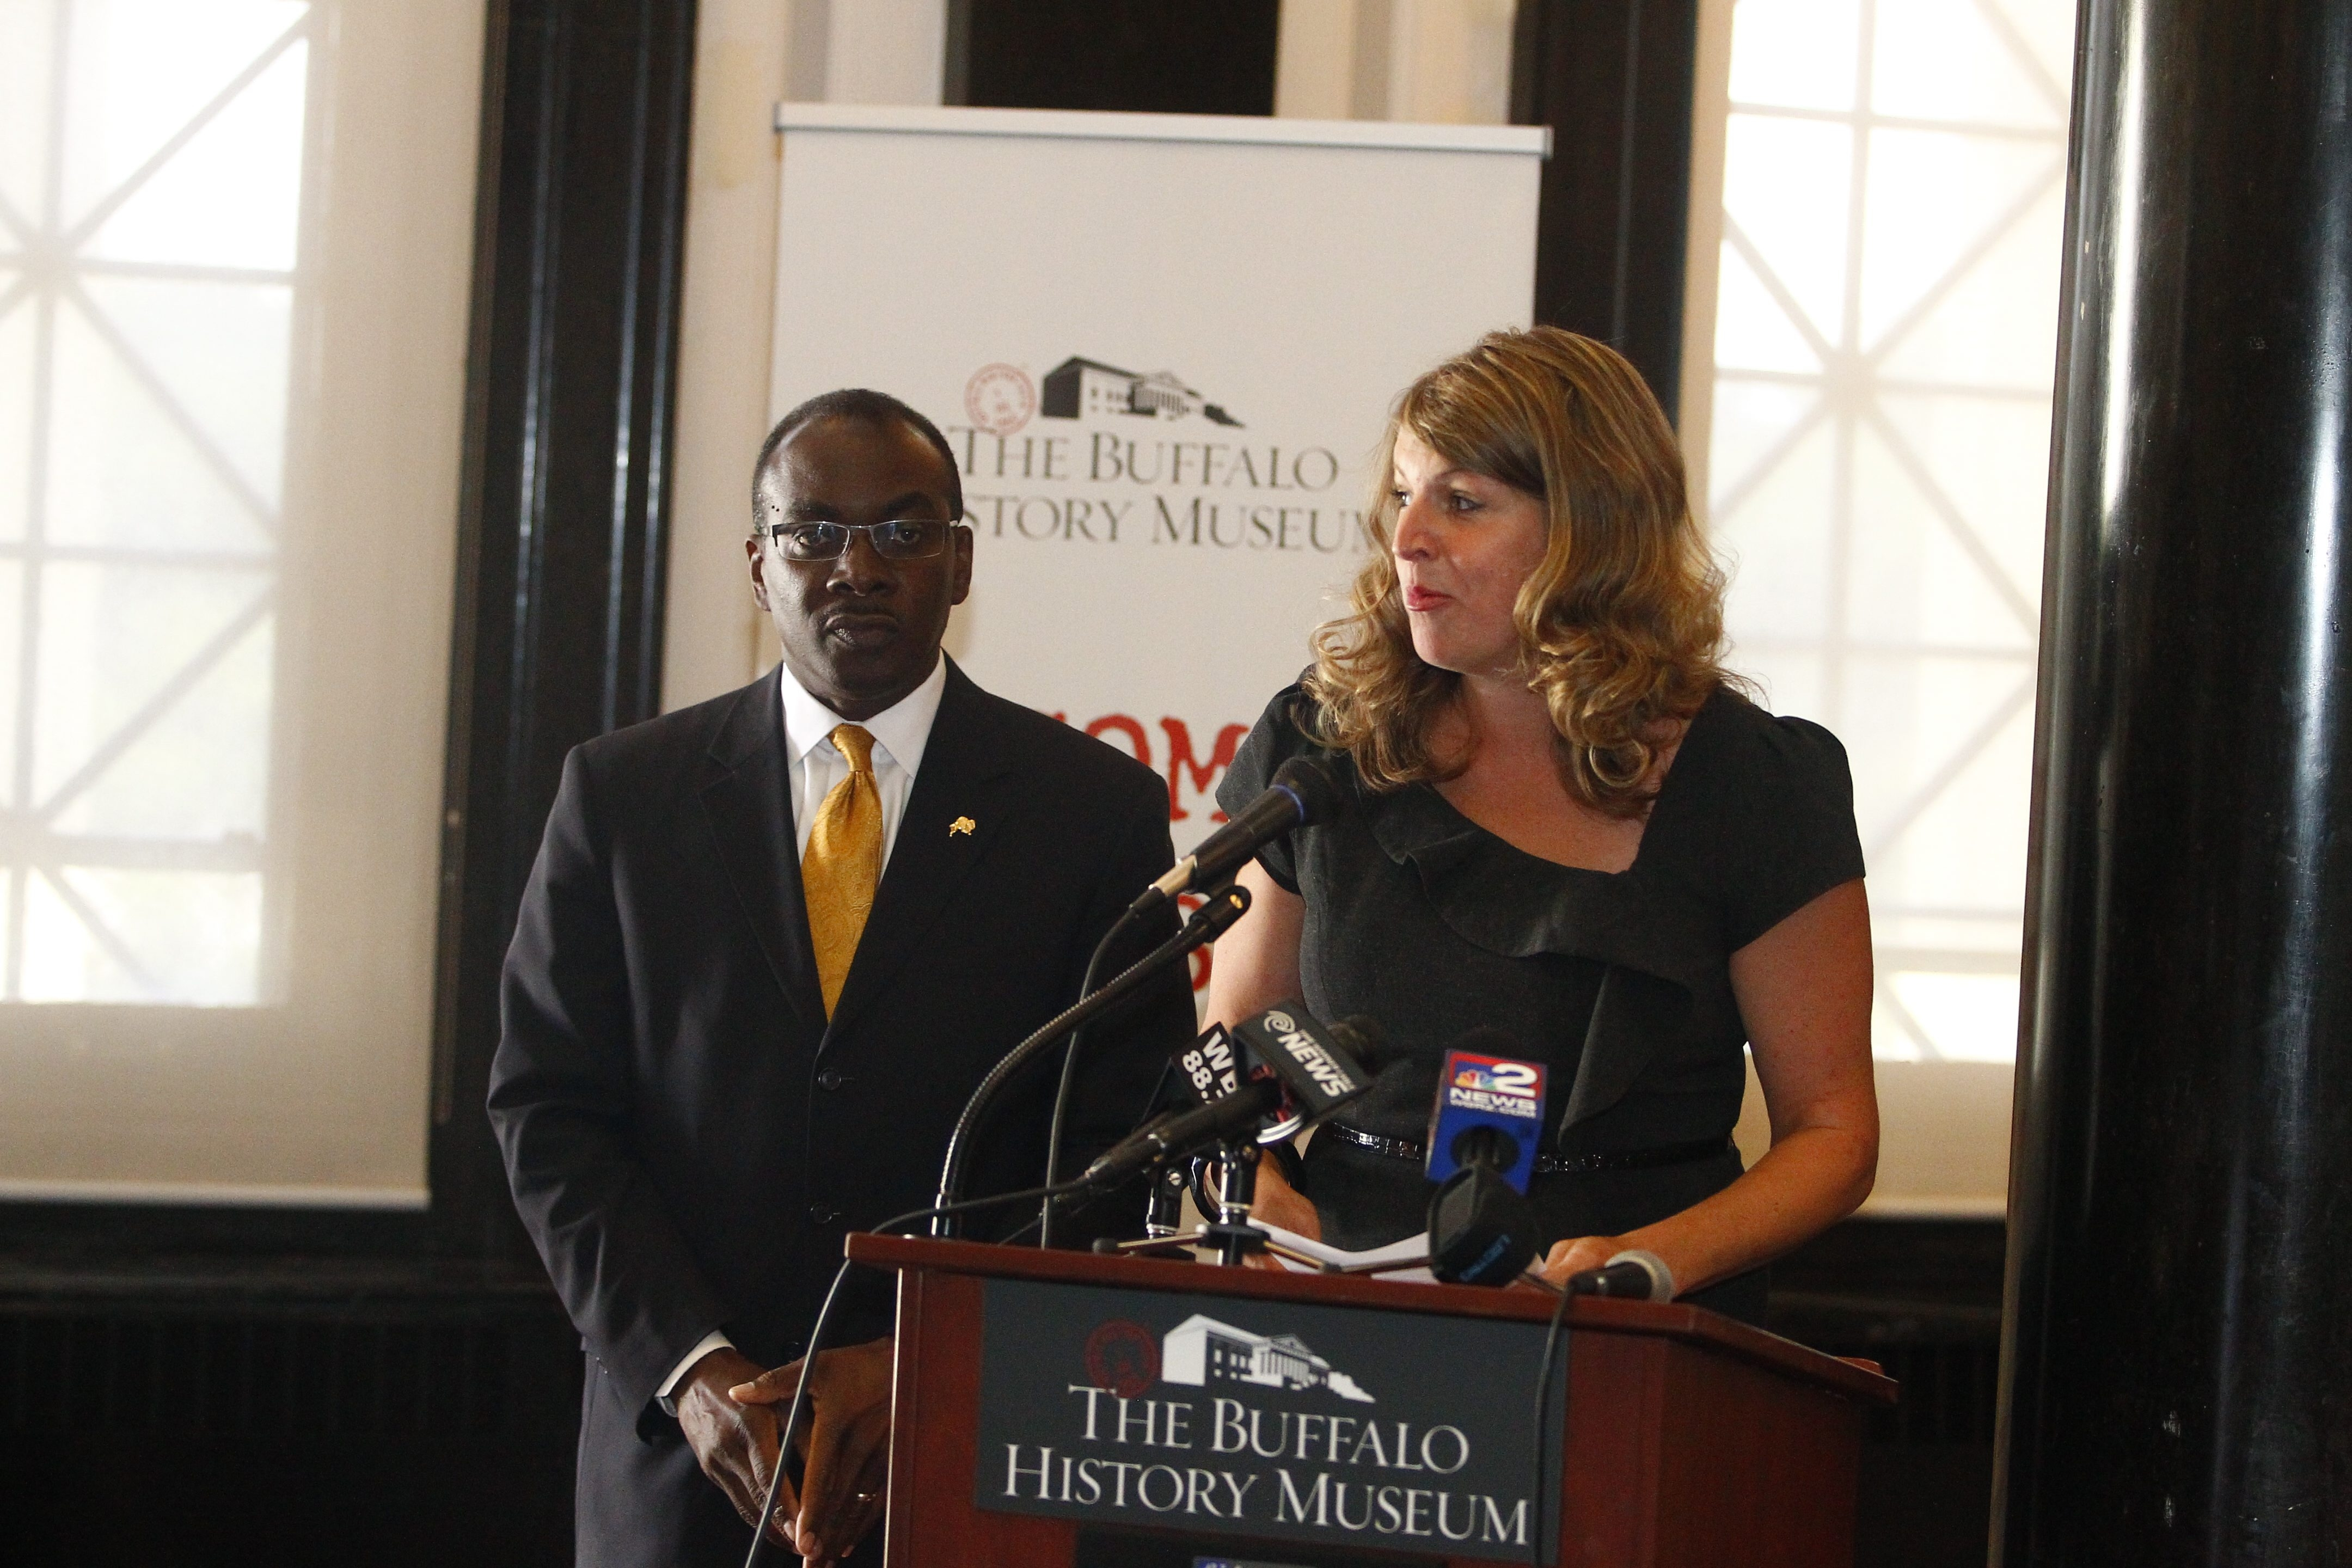 The Buffalo History Museum  Executive Director Melissa Brown, right,  and Mayor Byron Brown announced nearly $1 million in improvements to the electrical, lighting, fire, and security systems at The Buffalo History Museum, in  Buffalo, N.Y. on Thursday, July 24, 2014. (John Hickey/Buffalo News)